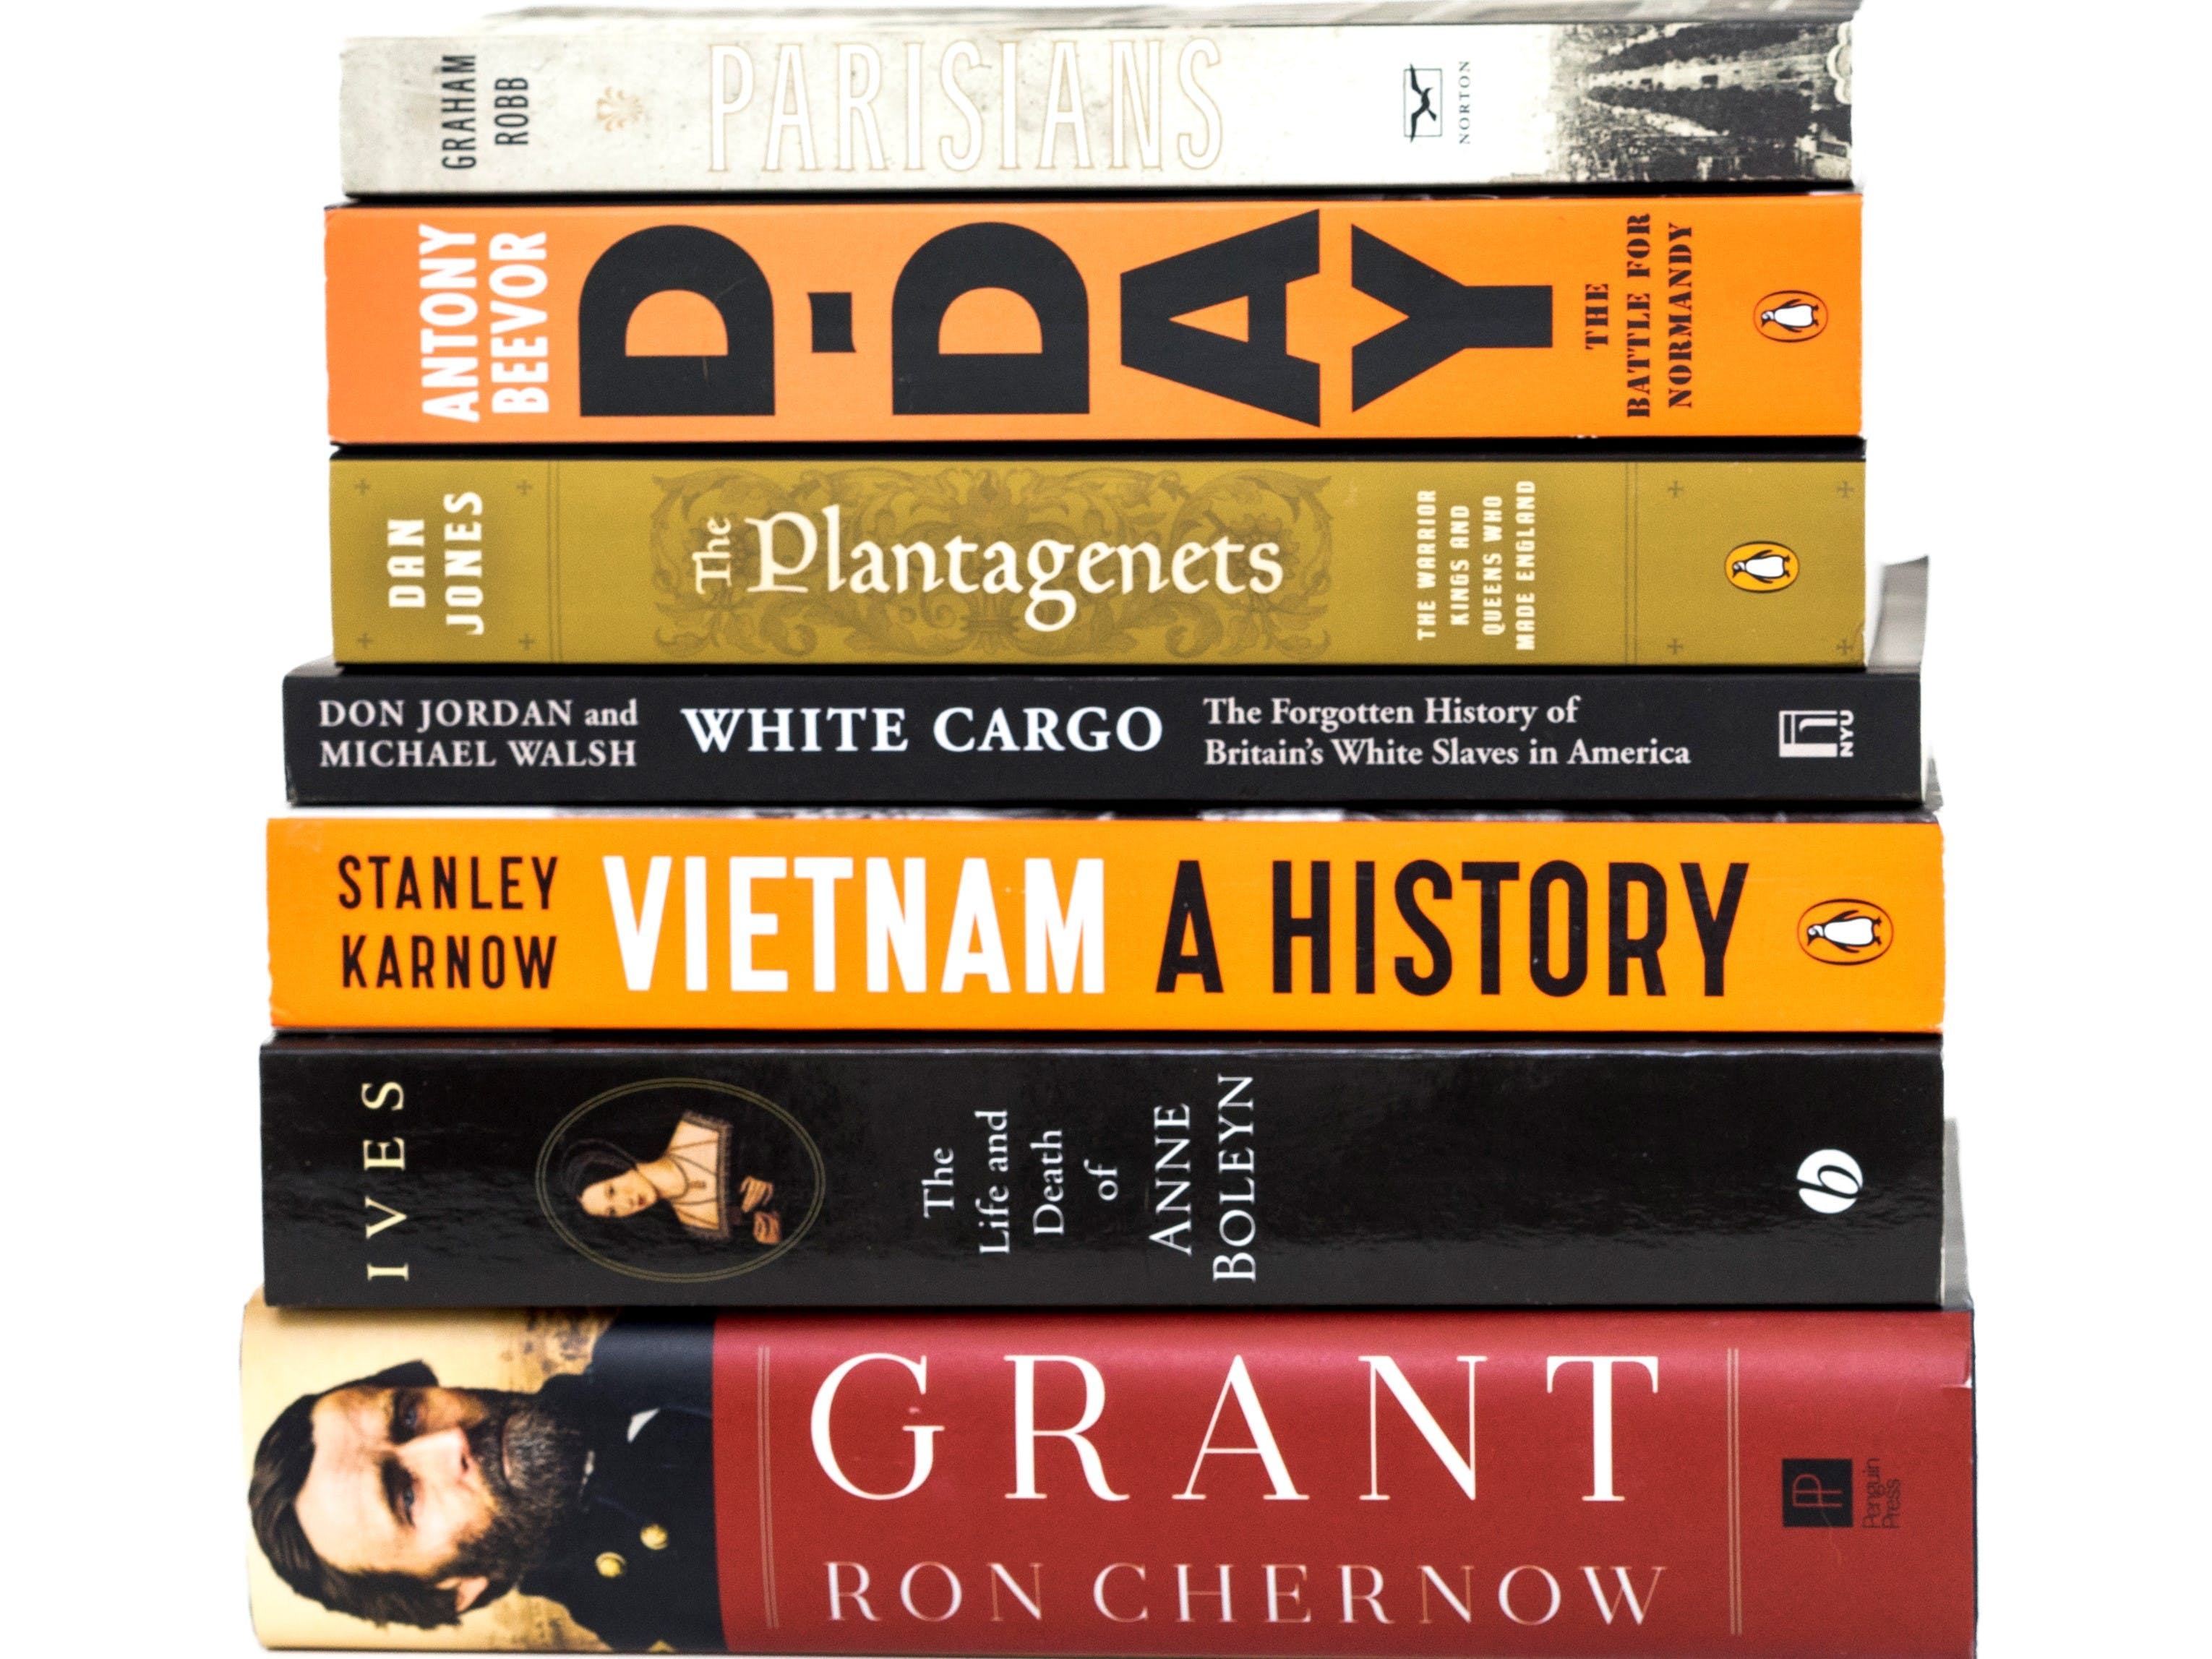 Bespoke Historical Book Club by Book Club Guru